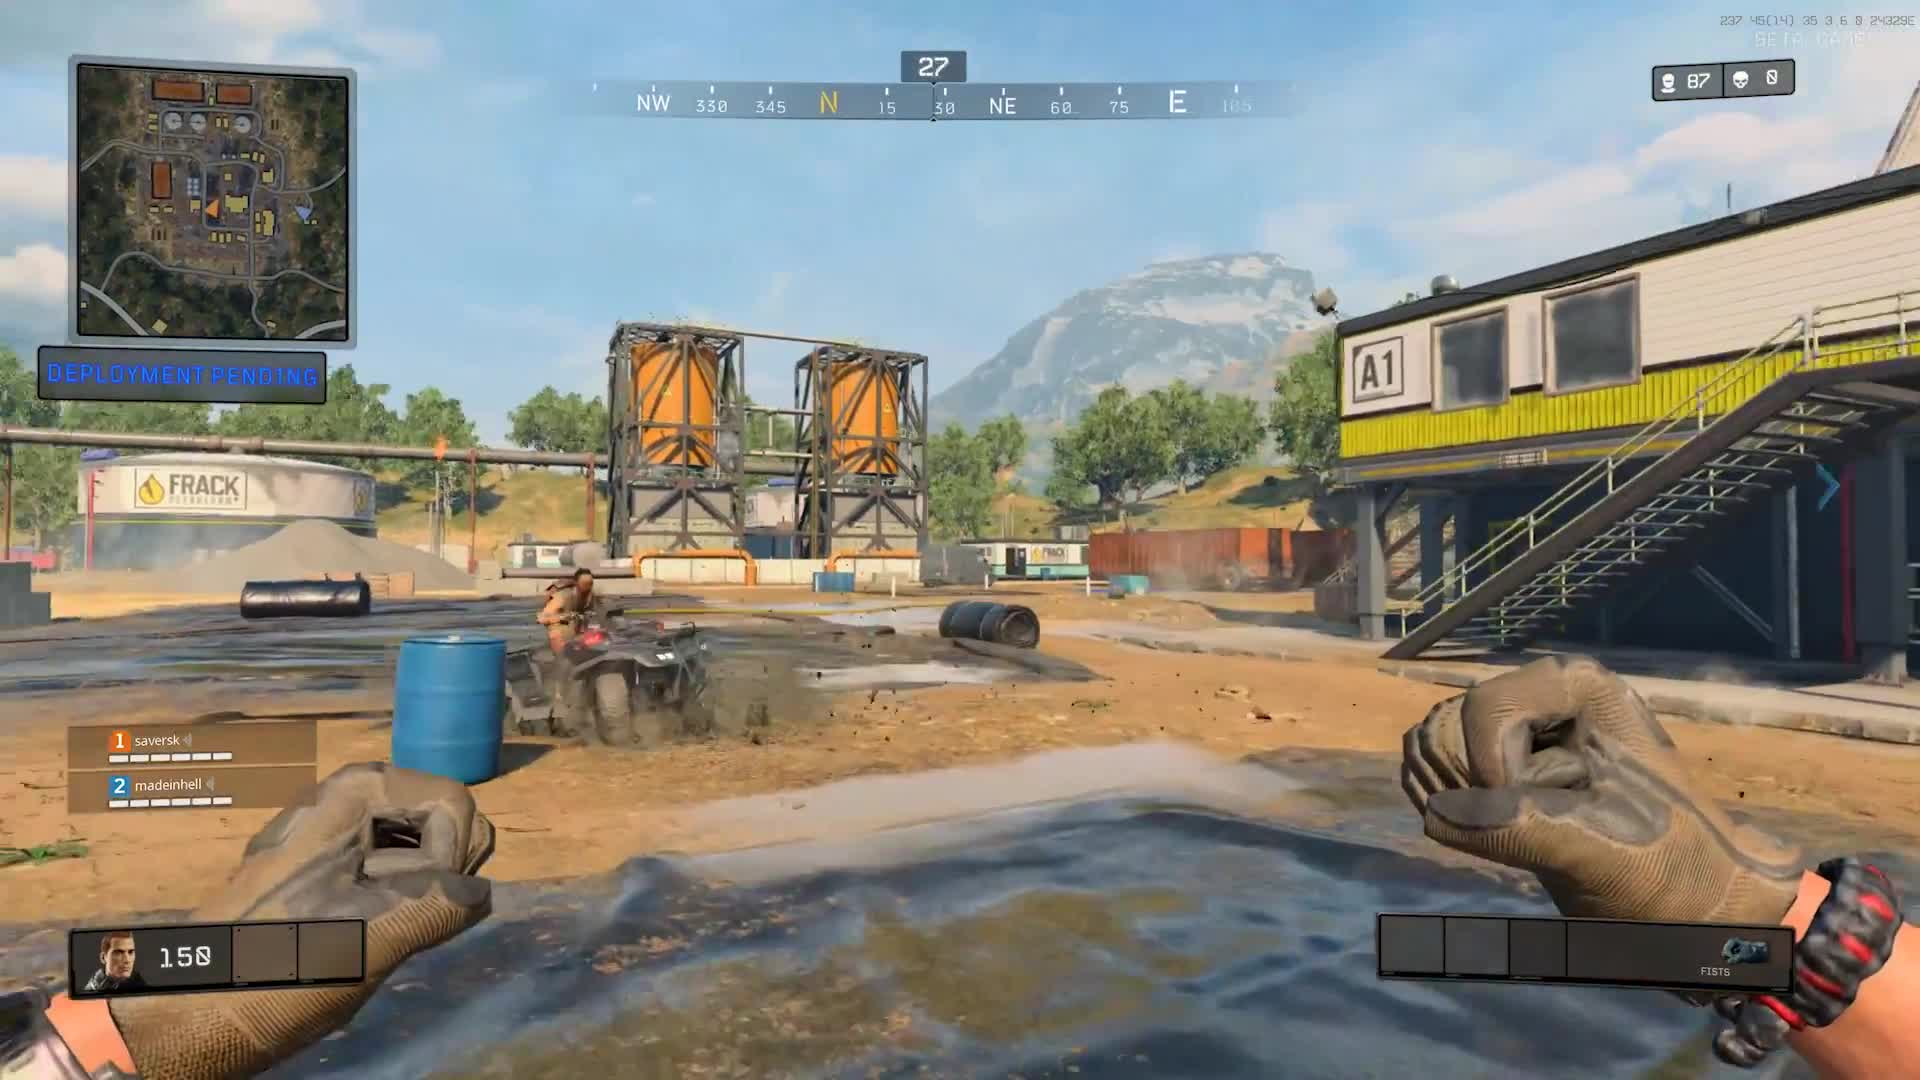 Call of Duty Black Ops 4 - Blackout Beta gameplay